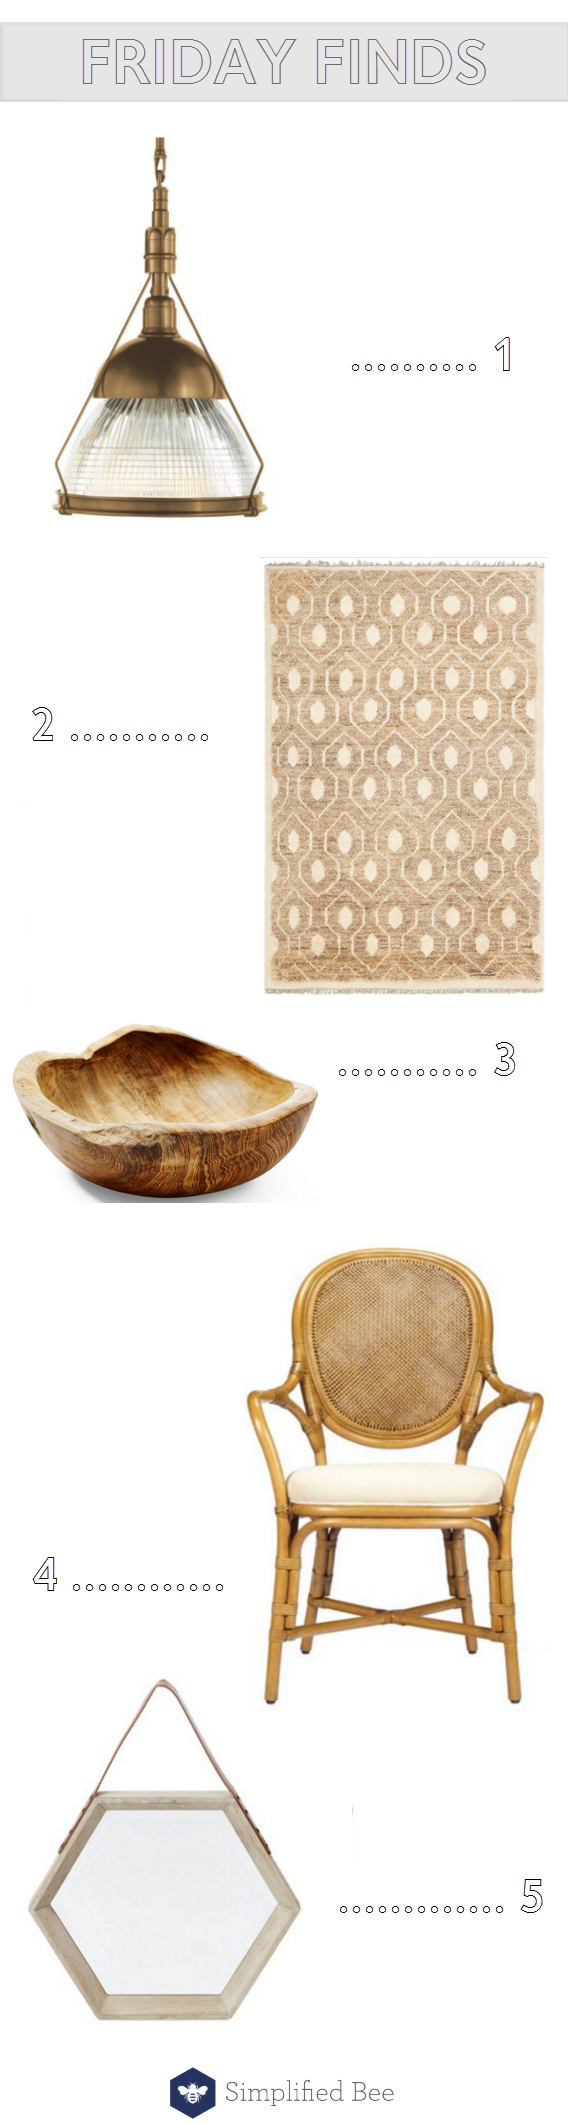 one kings land // friday finds // @simplifiedbee #sale #labordaysale #okl